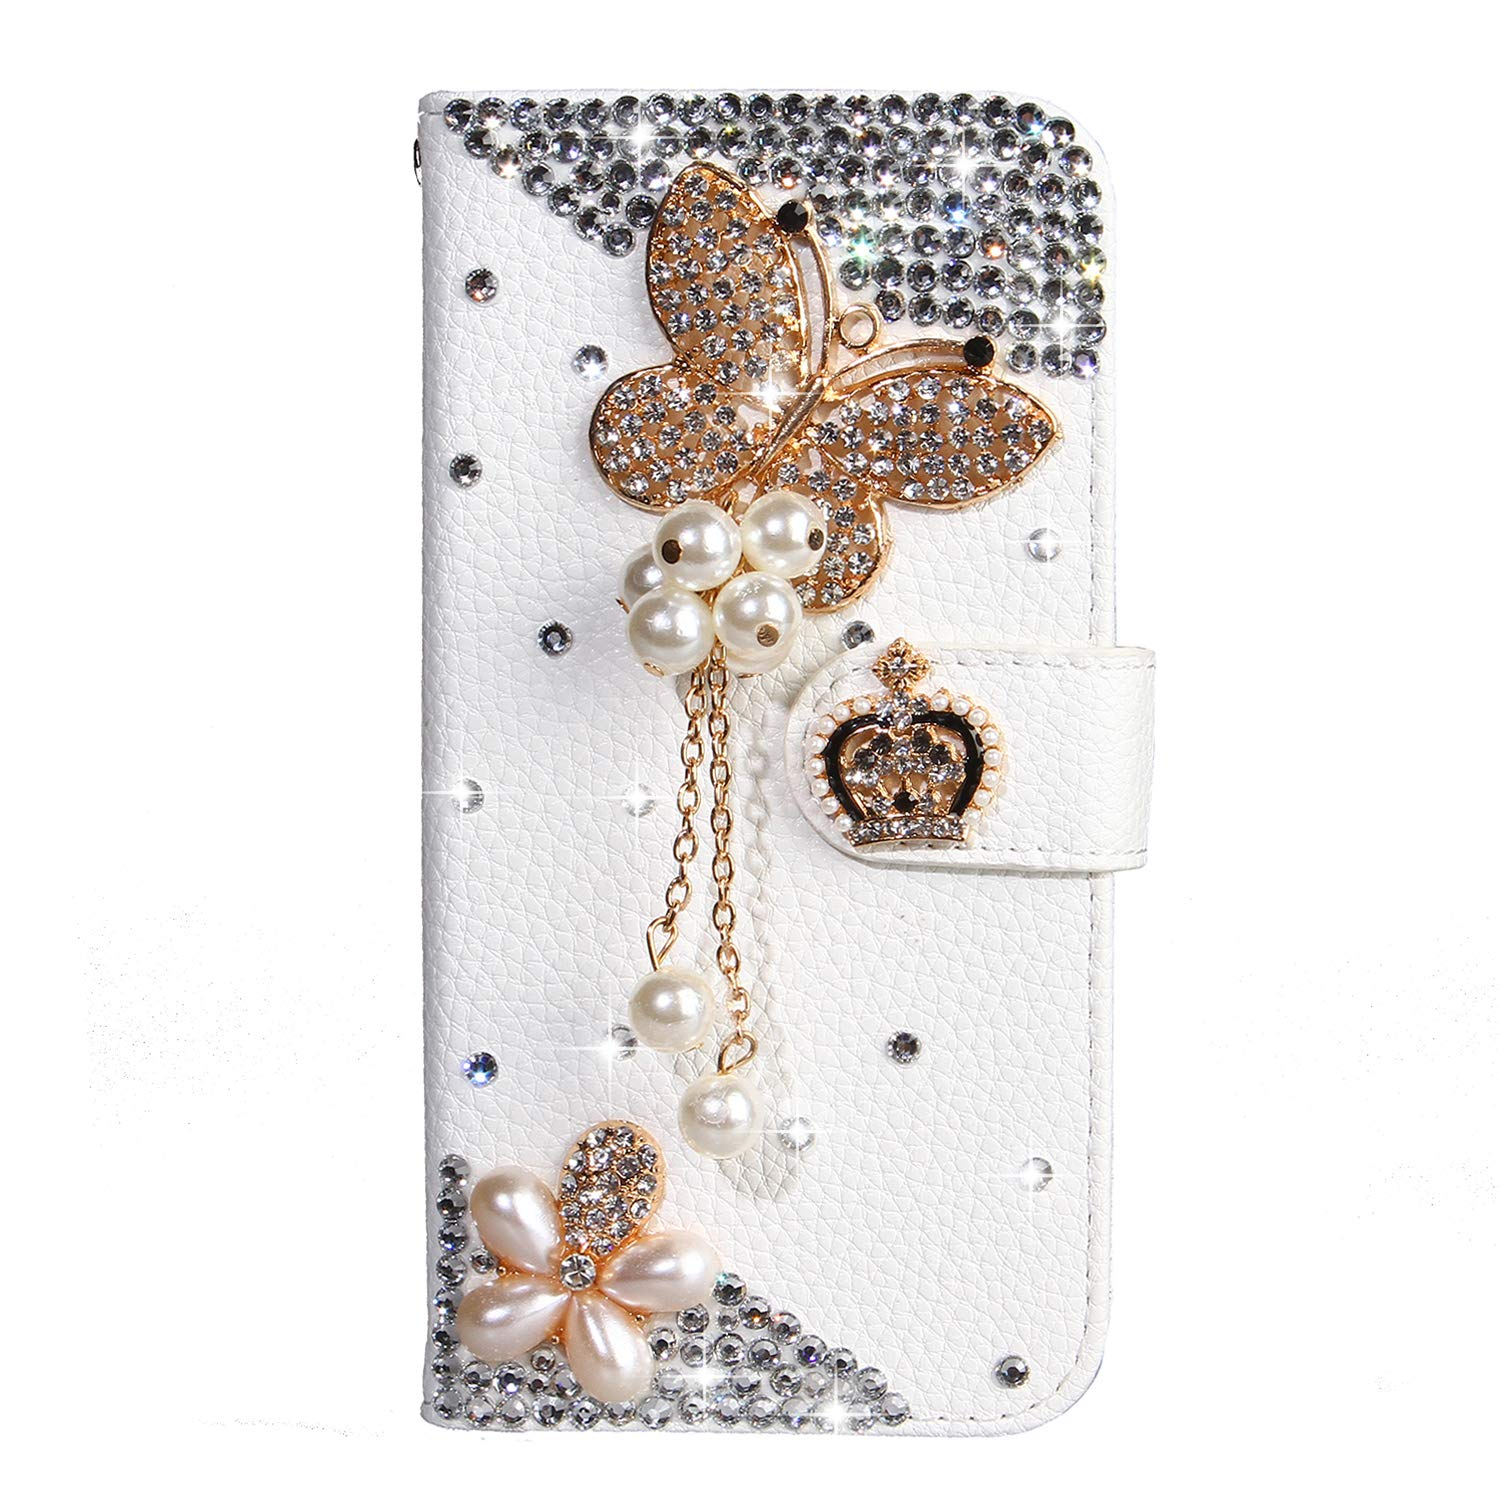 Crystal Wallet Case for Huawei P20,Aoucase Stylish Luxury 3D Handmade Pearl Pendant Butterfly Design Bling Pocket Purse Soft Rubber Stand White Leather Case with Black Dual-use Stylus by Aoucase